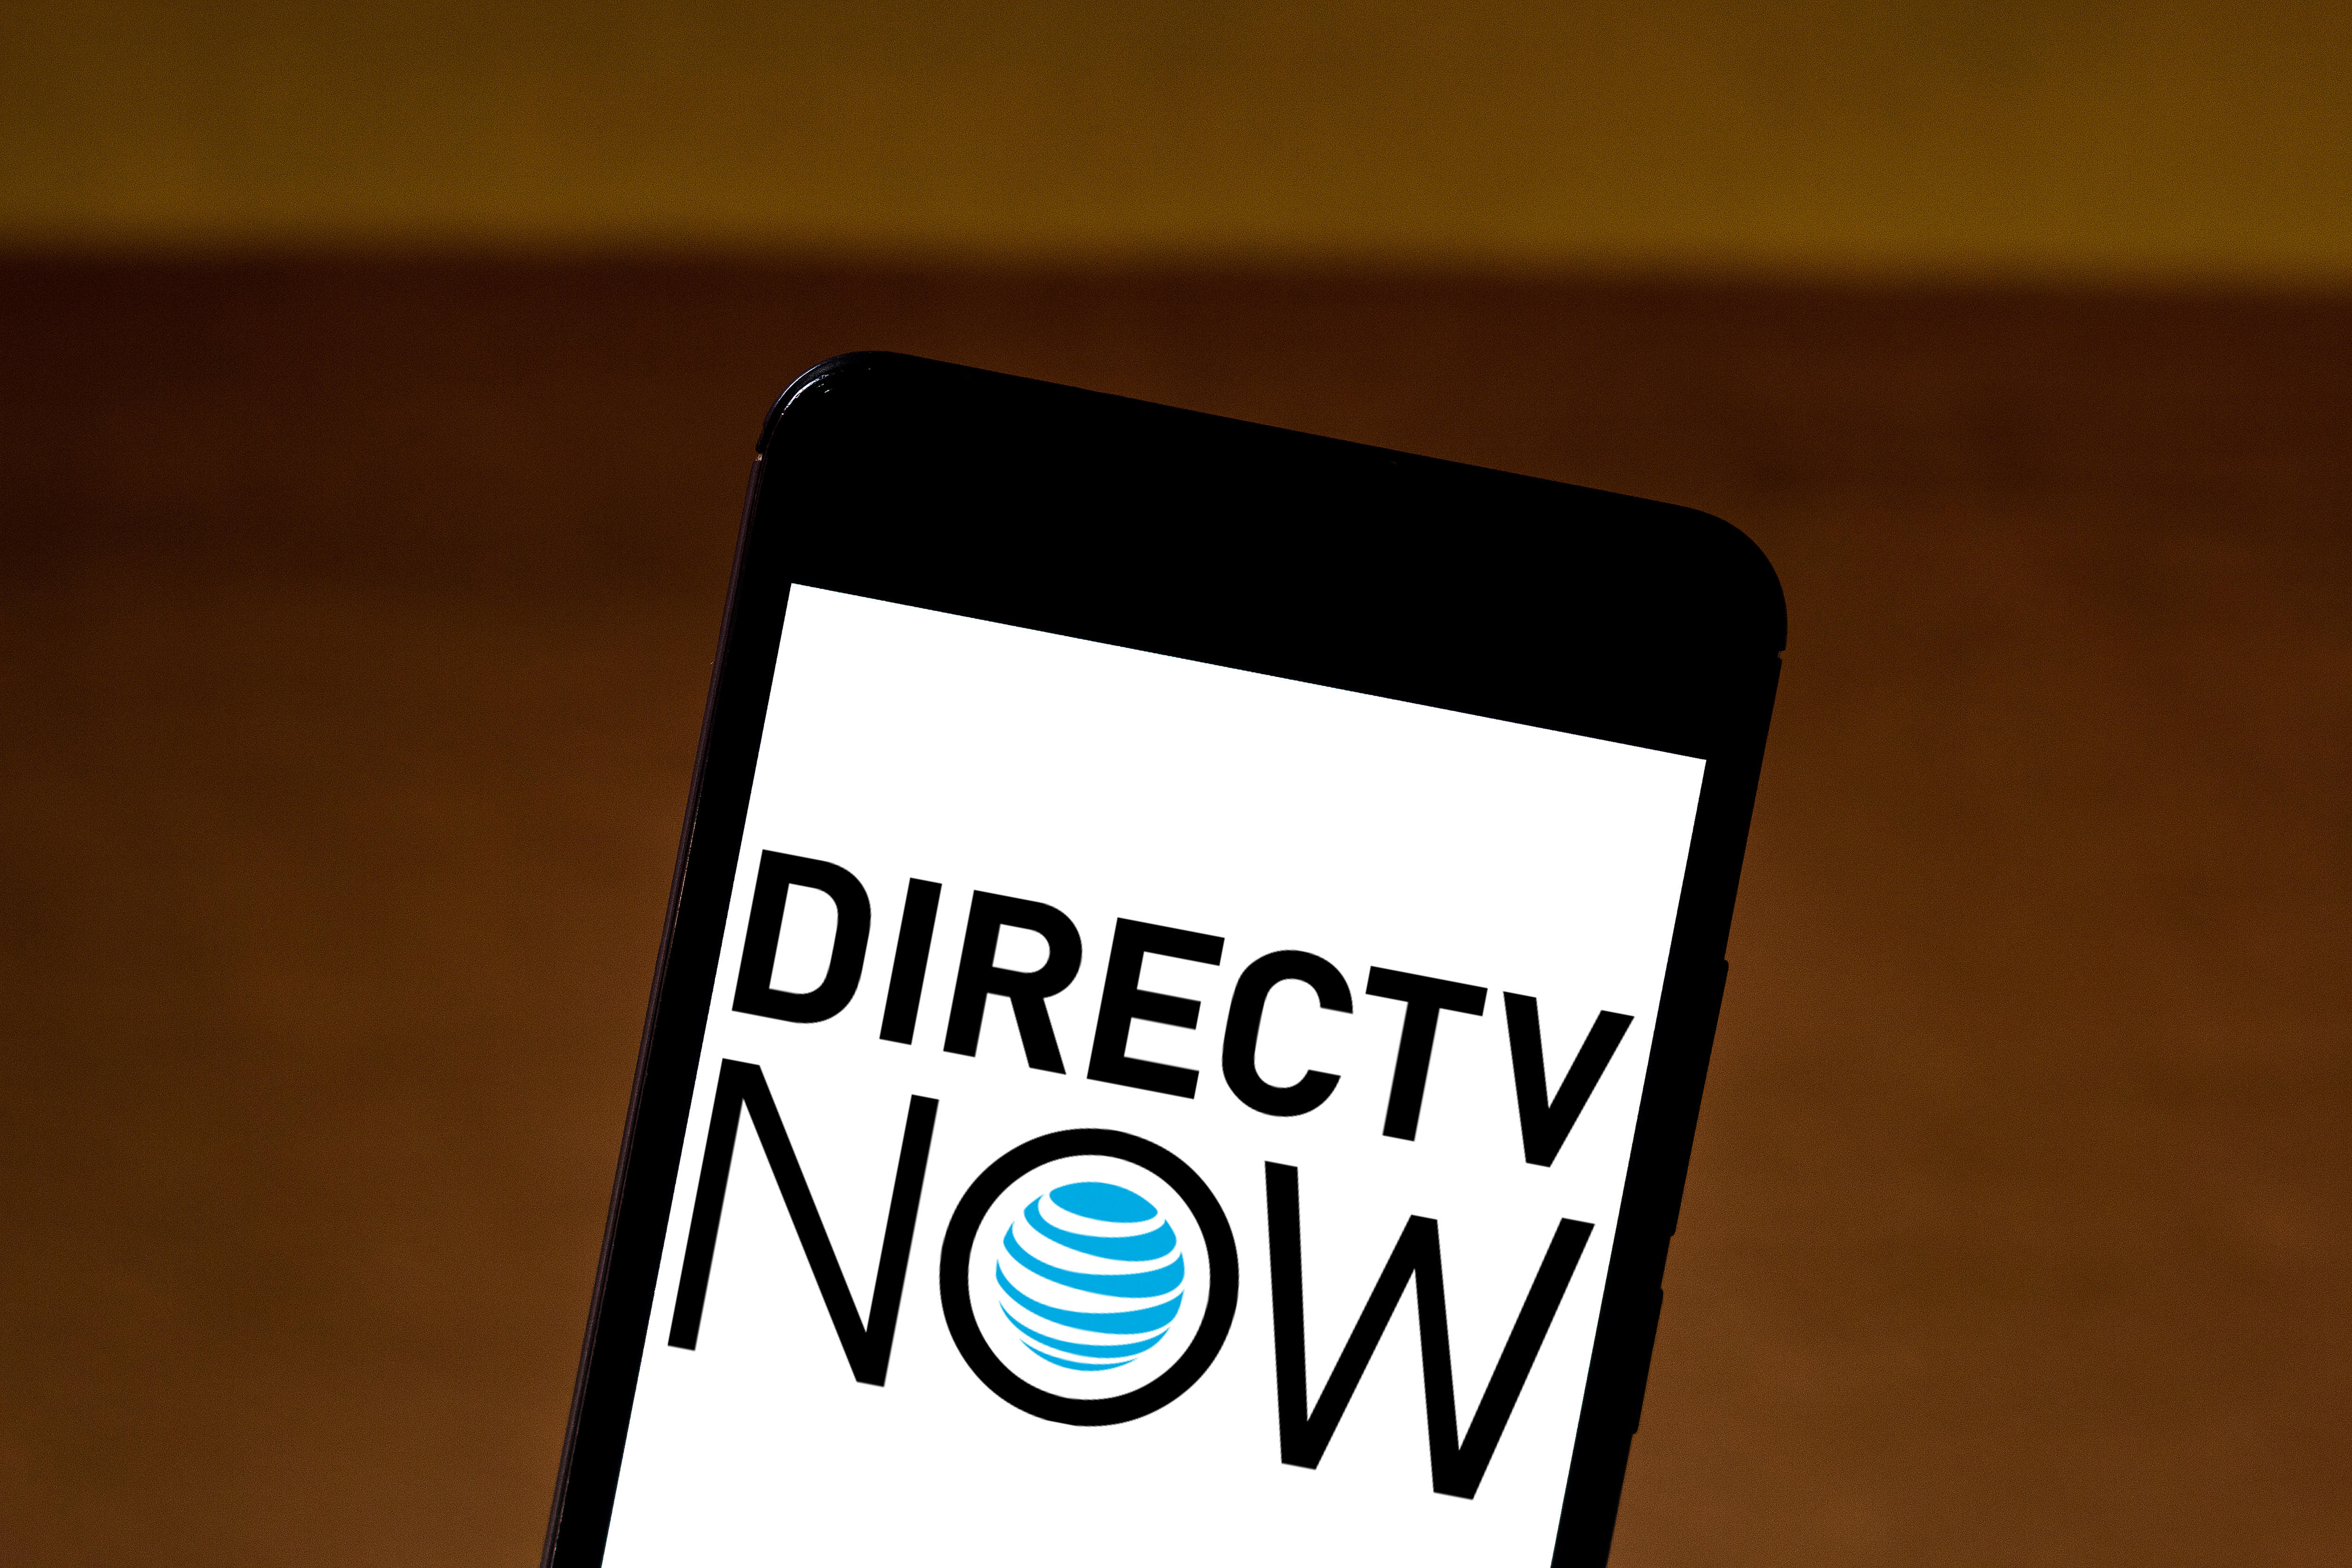 The DirecTV Now logo on a smartphone screen.